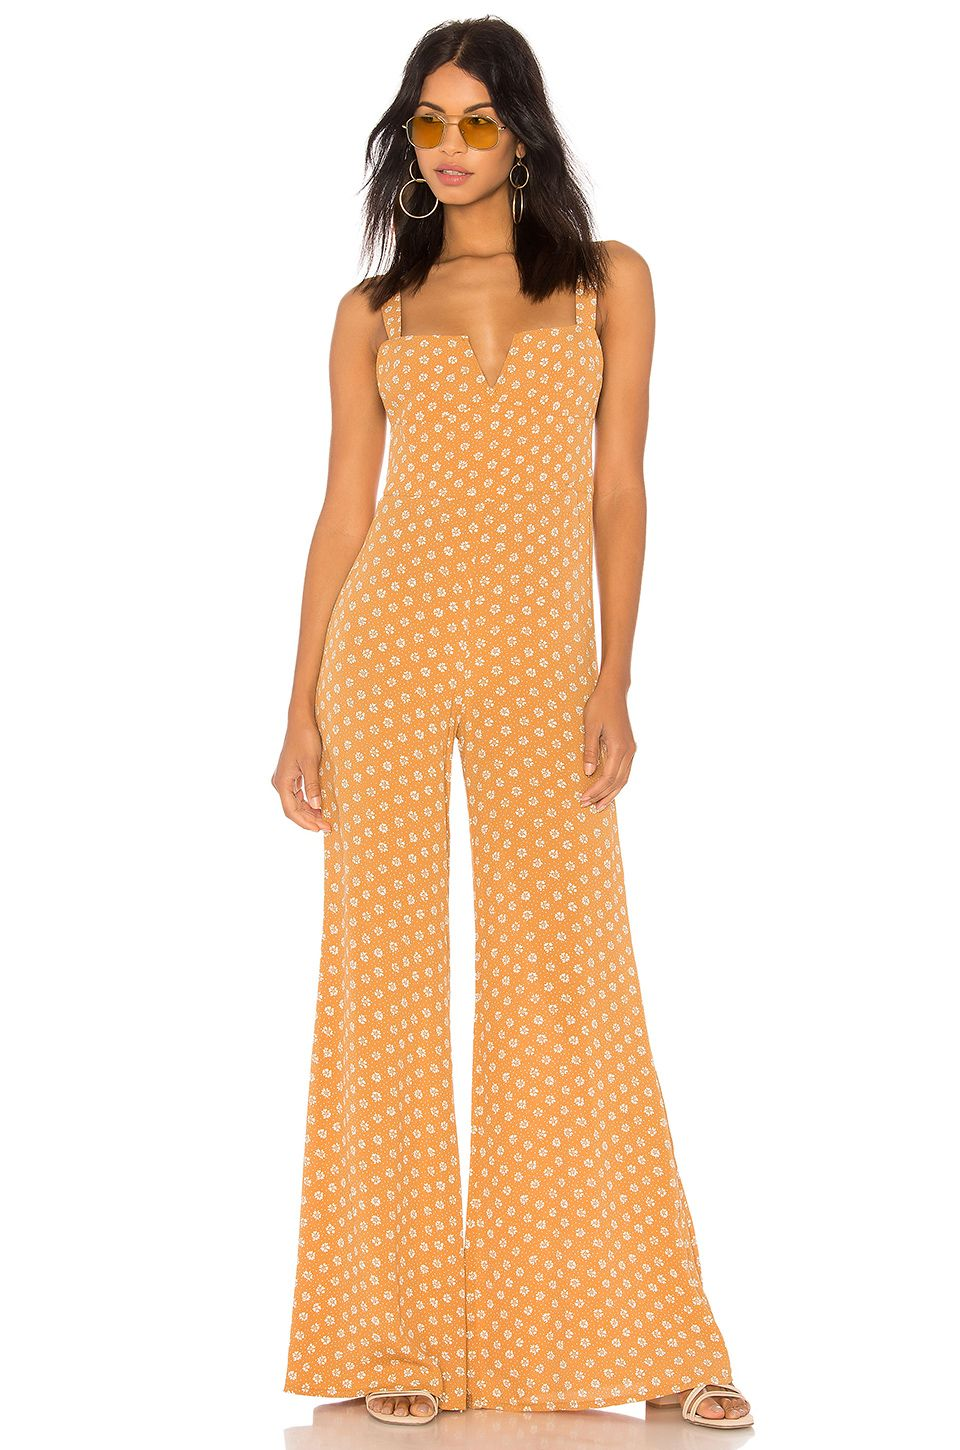 030eed875a Revolve jumpsuit